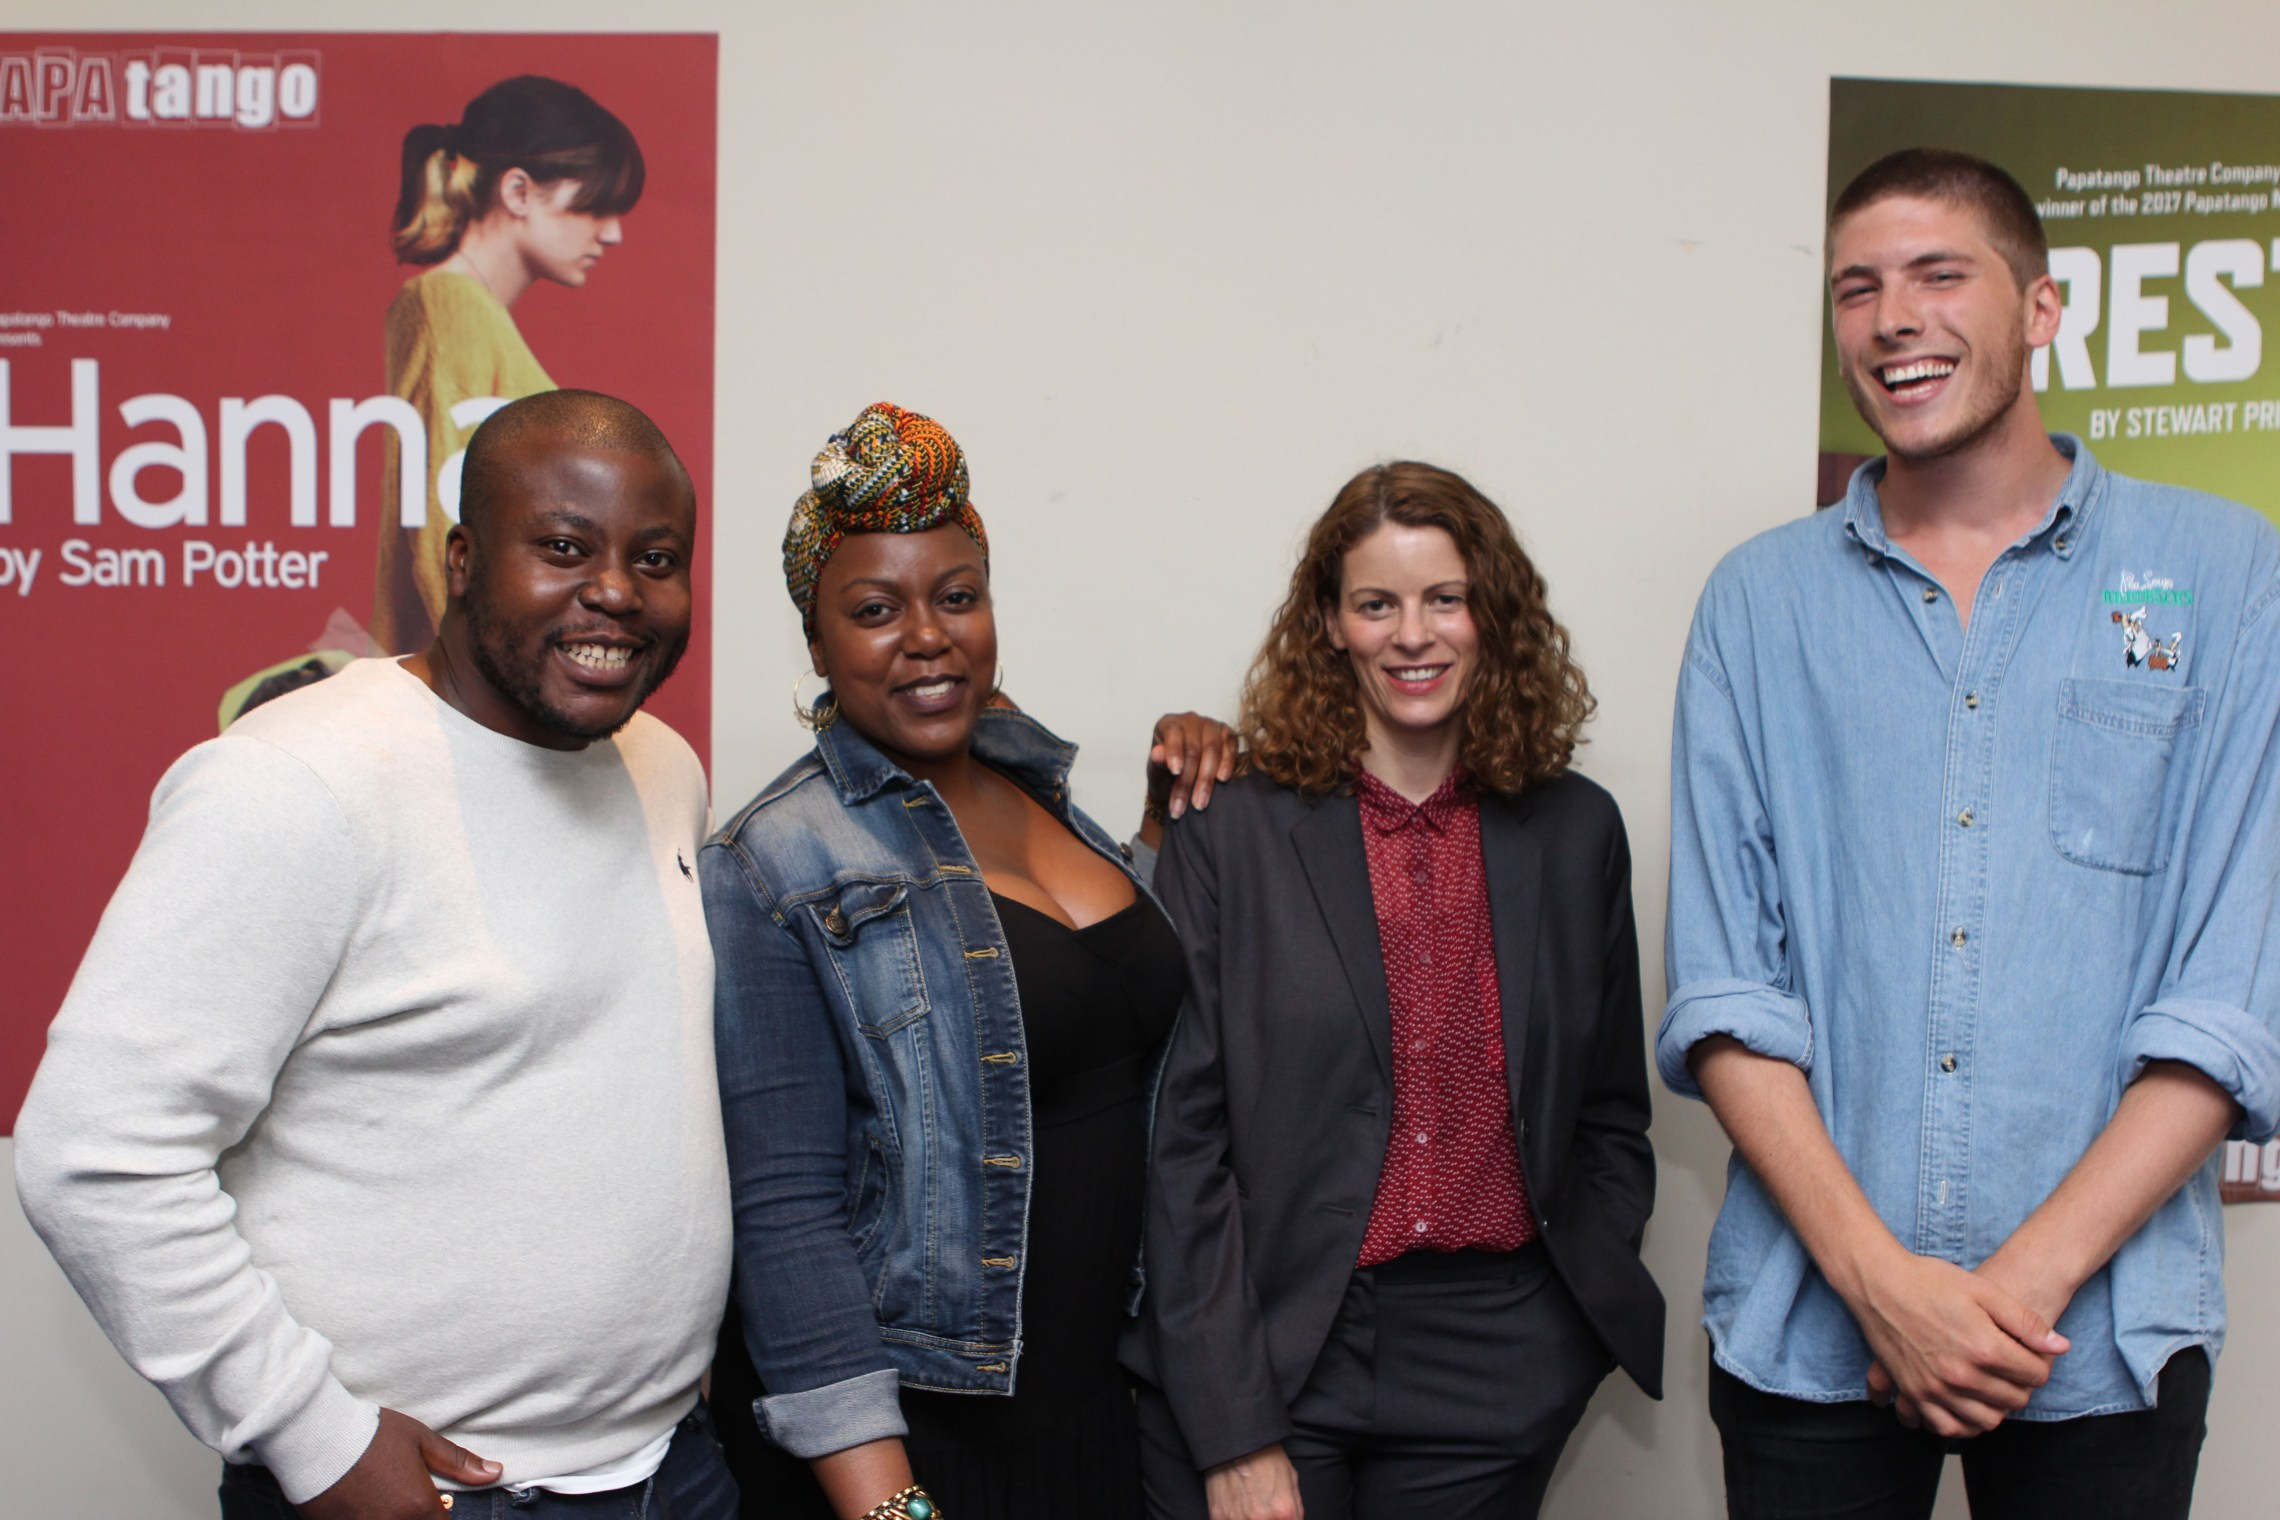 Three-former-Resident-Playwrights-May-Sumbwanyambe-Sam-Potter-and-Sam-Grabiner-with-new-Resident-Playwright-Dara-Aiyegbayo-second-from-left-Photo-credit-Adam-Bennett